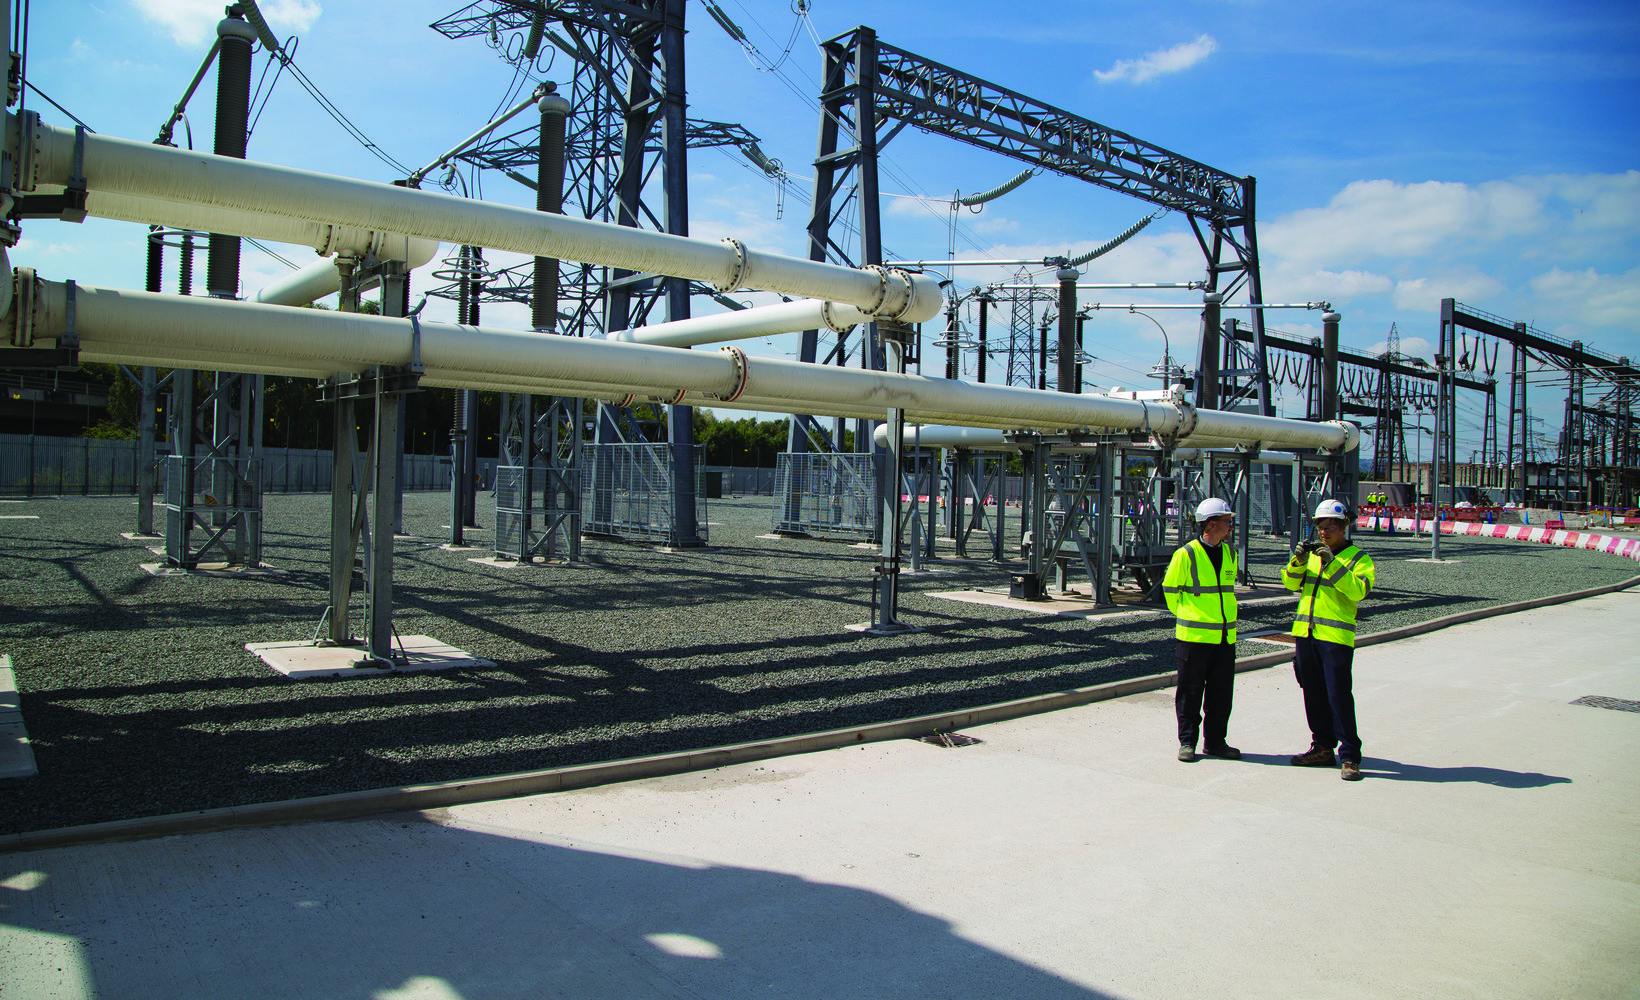 Two colleagues stand in front of a large assembly of pipes, electricity apparatus and an electrical tower, which connects to power lines that stretch off into the distance